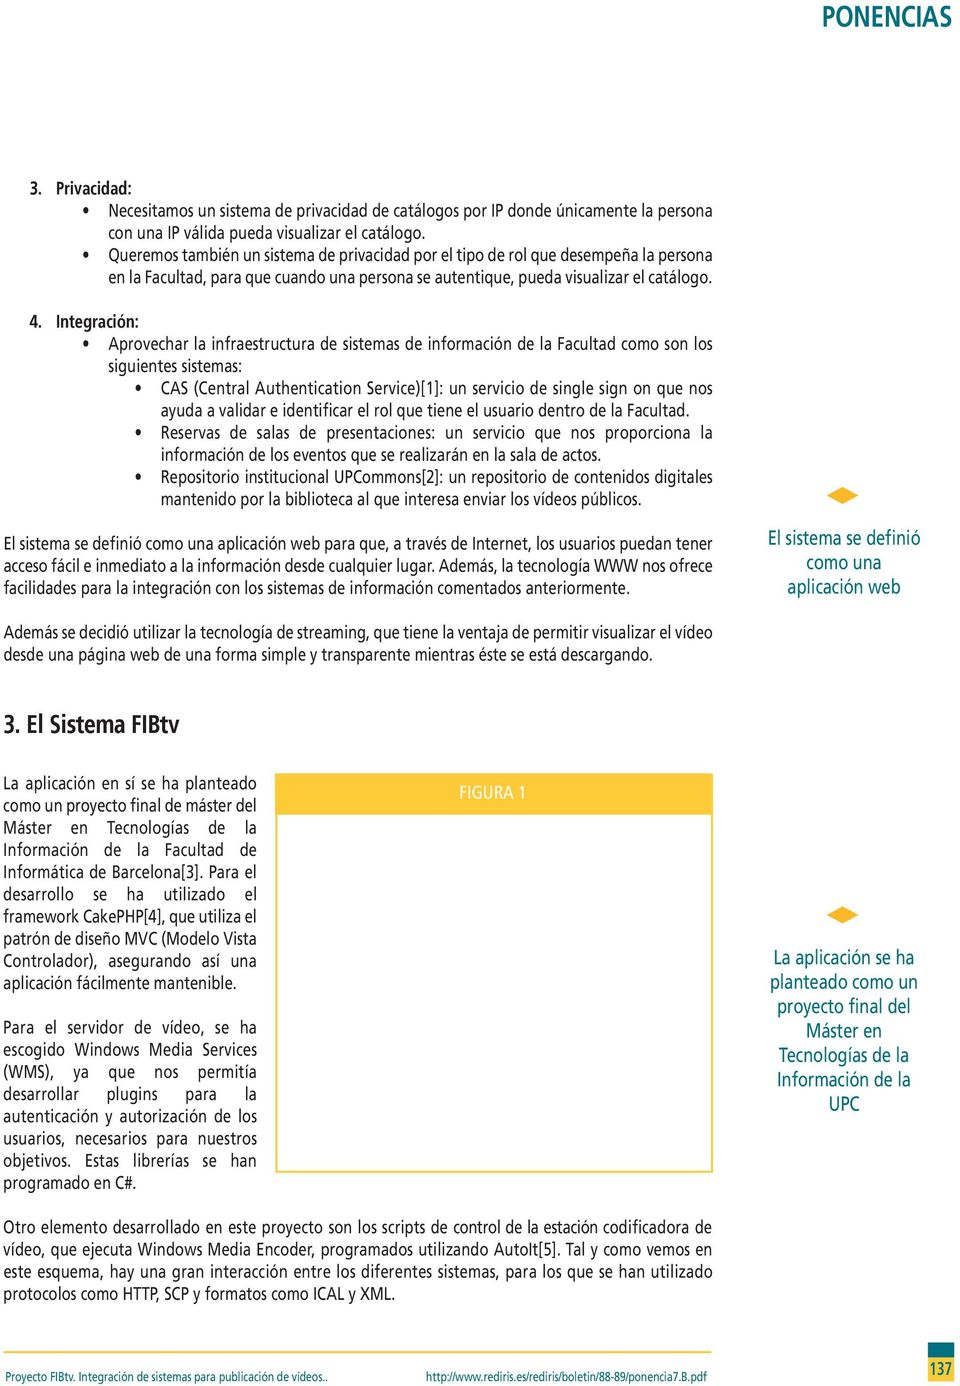 Integración: Aprovechar la infraestructura de sistemas de información de la Facultad como son los siguientes sistemas: CAS (Central Authentication Service)[1]: un servicio de single sign on que nos